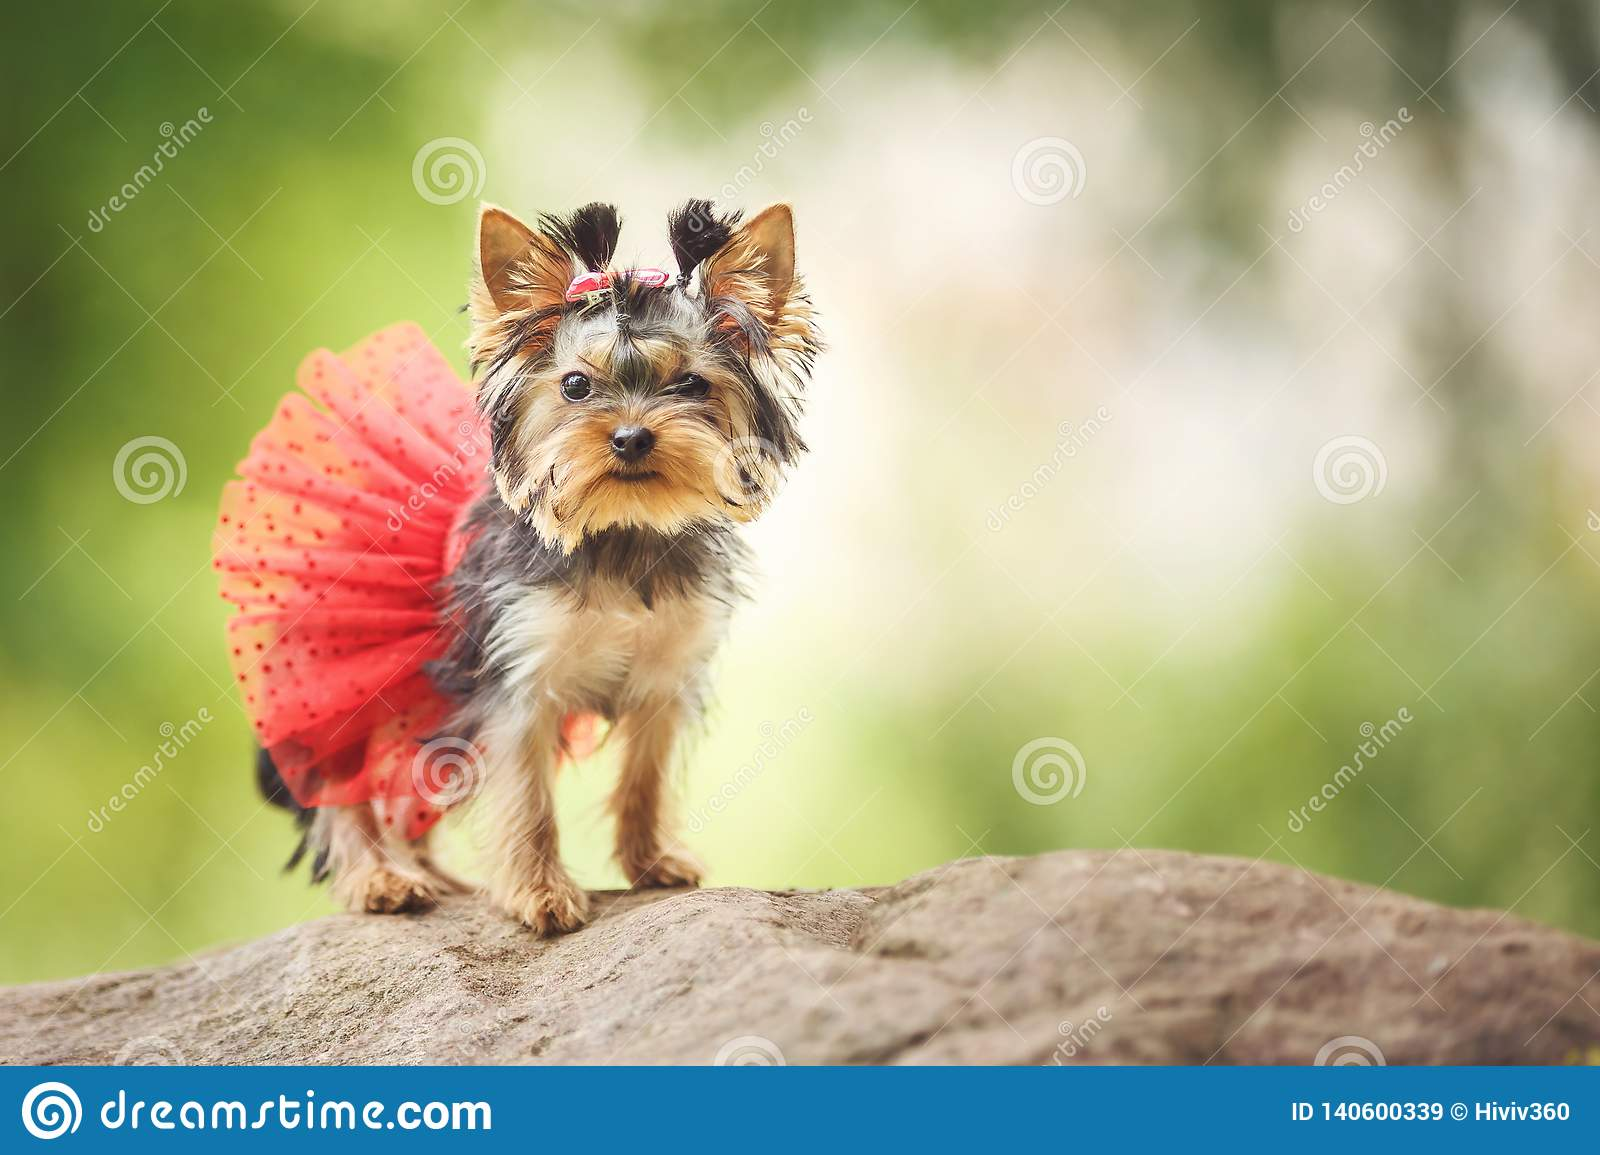 Lovely puppy of female Yorkshire Terrier small dog with red skirt on green blurred background